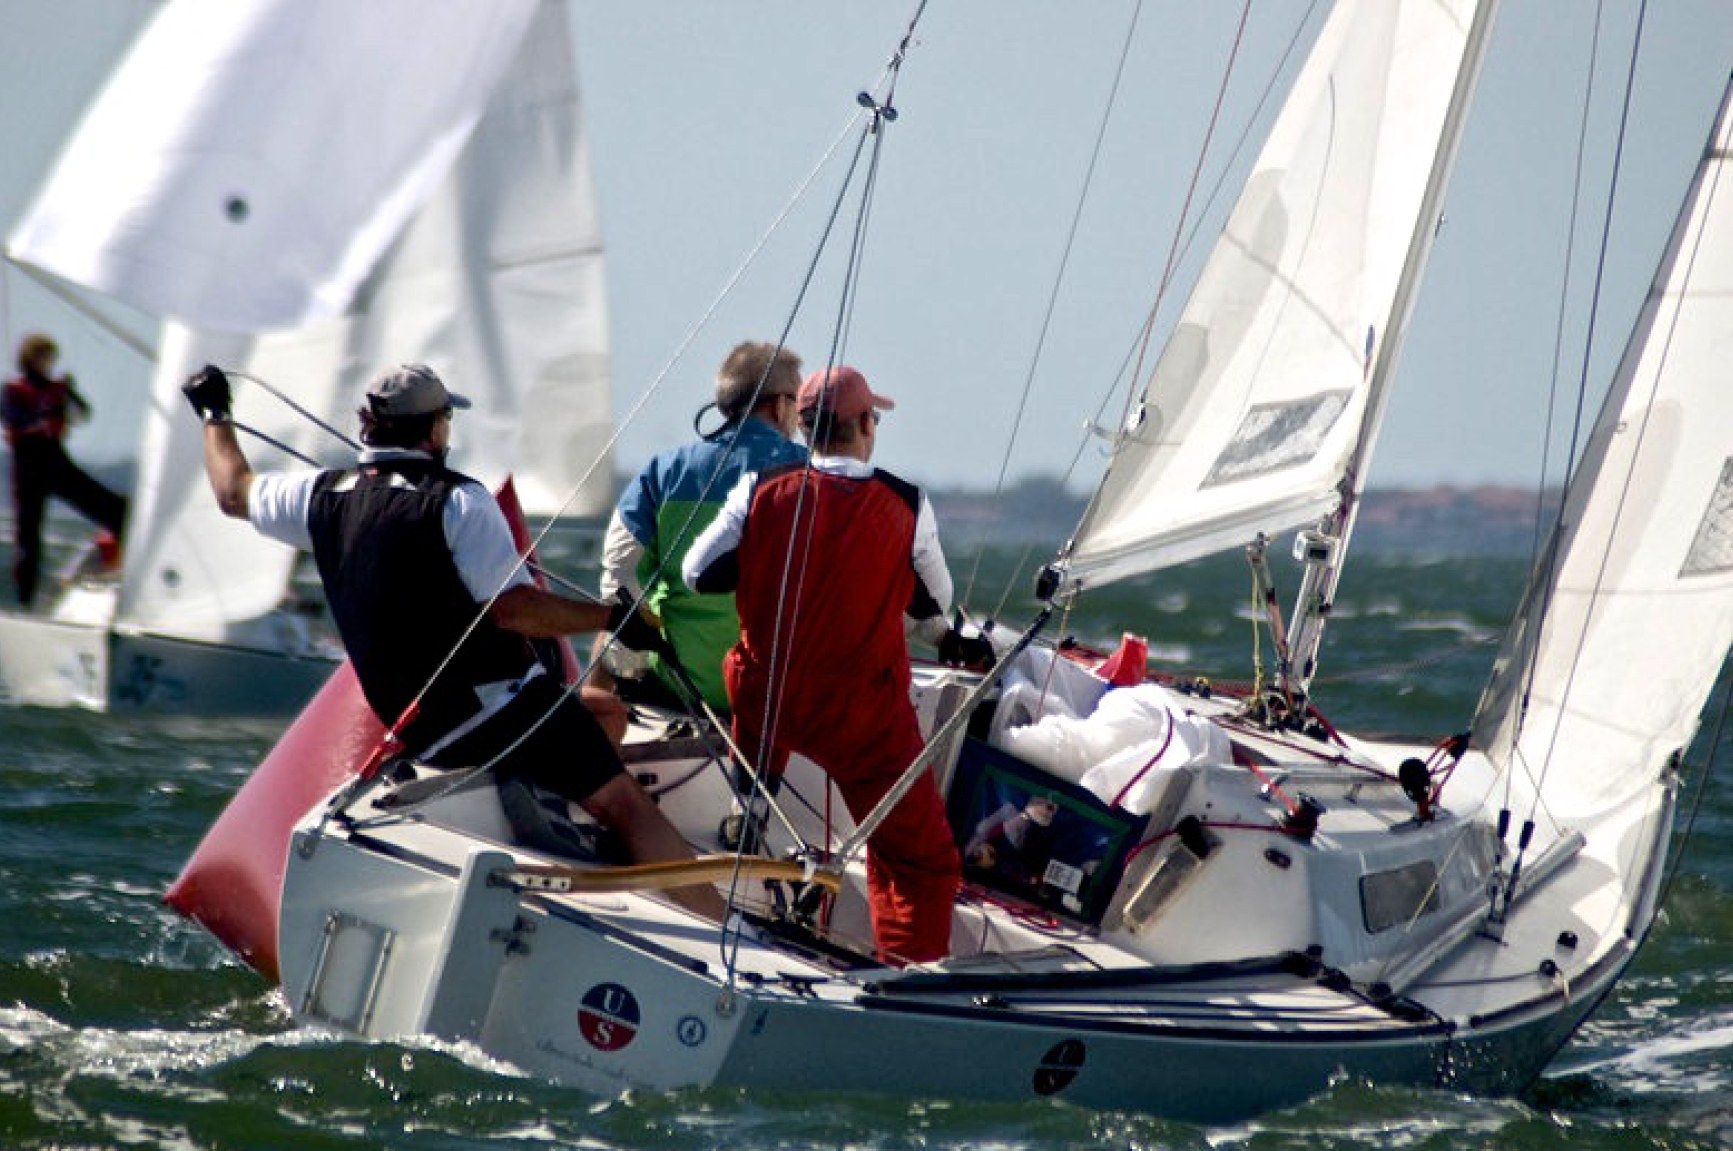 J/22 sponsored by and featuring Ullman Sails